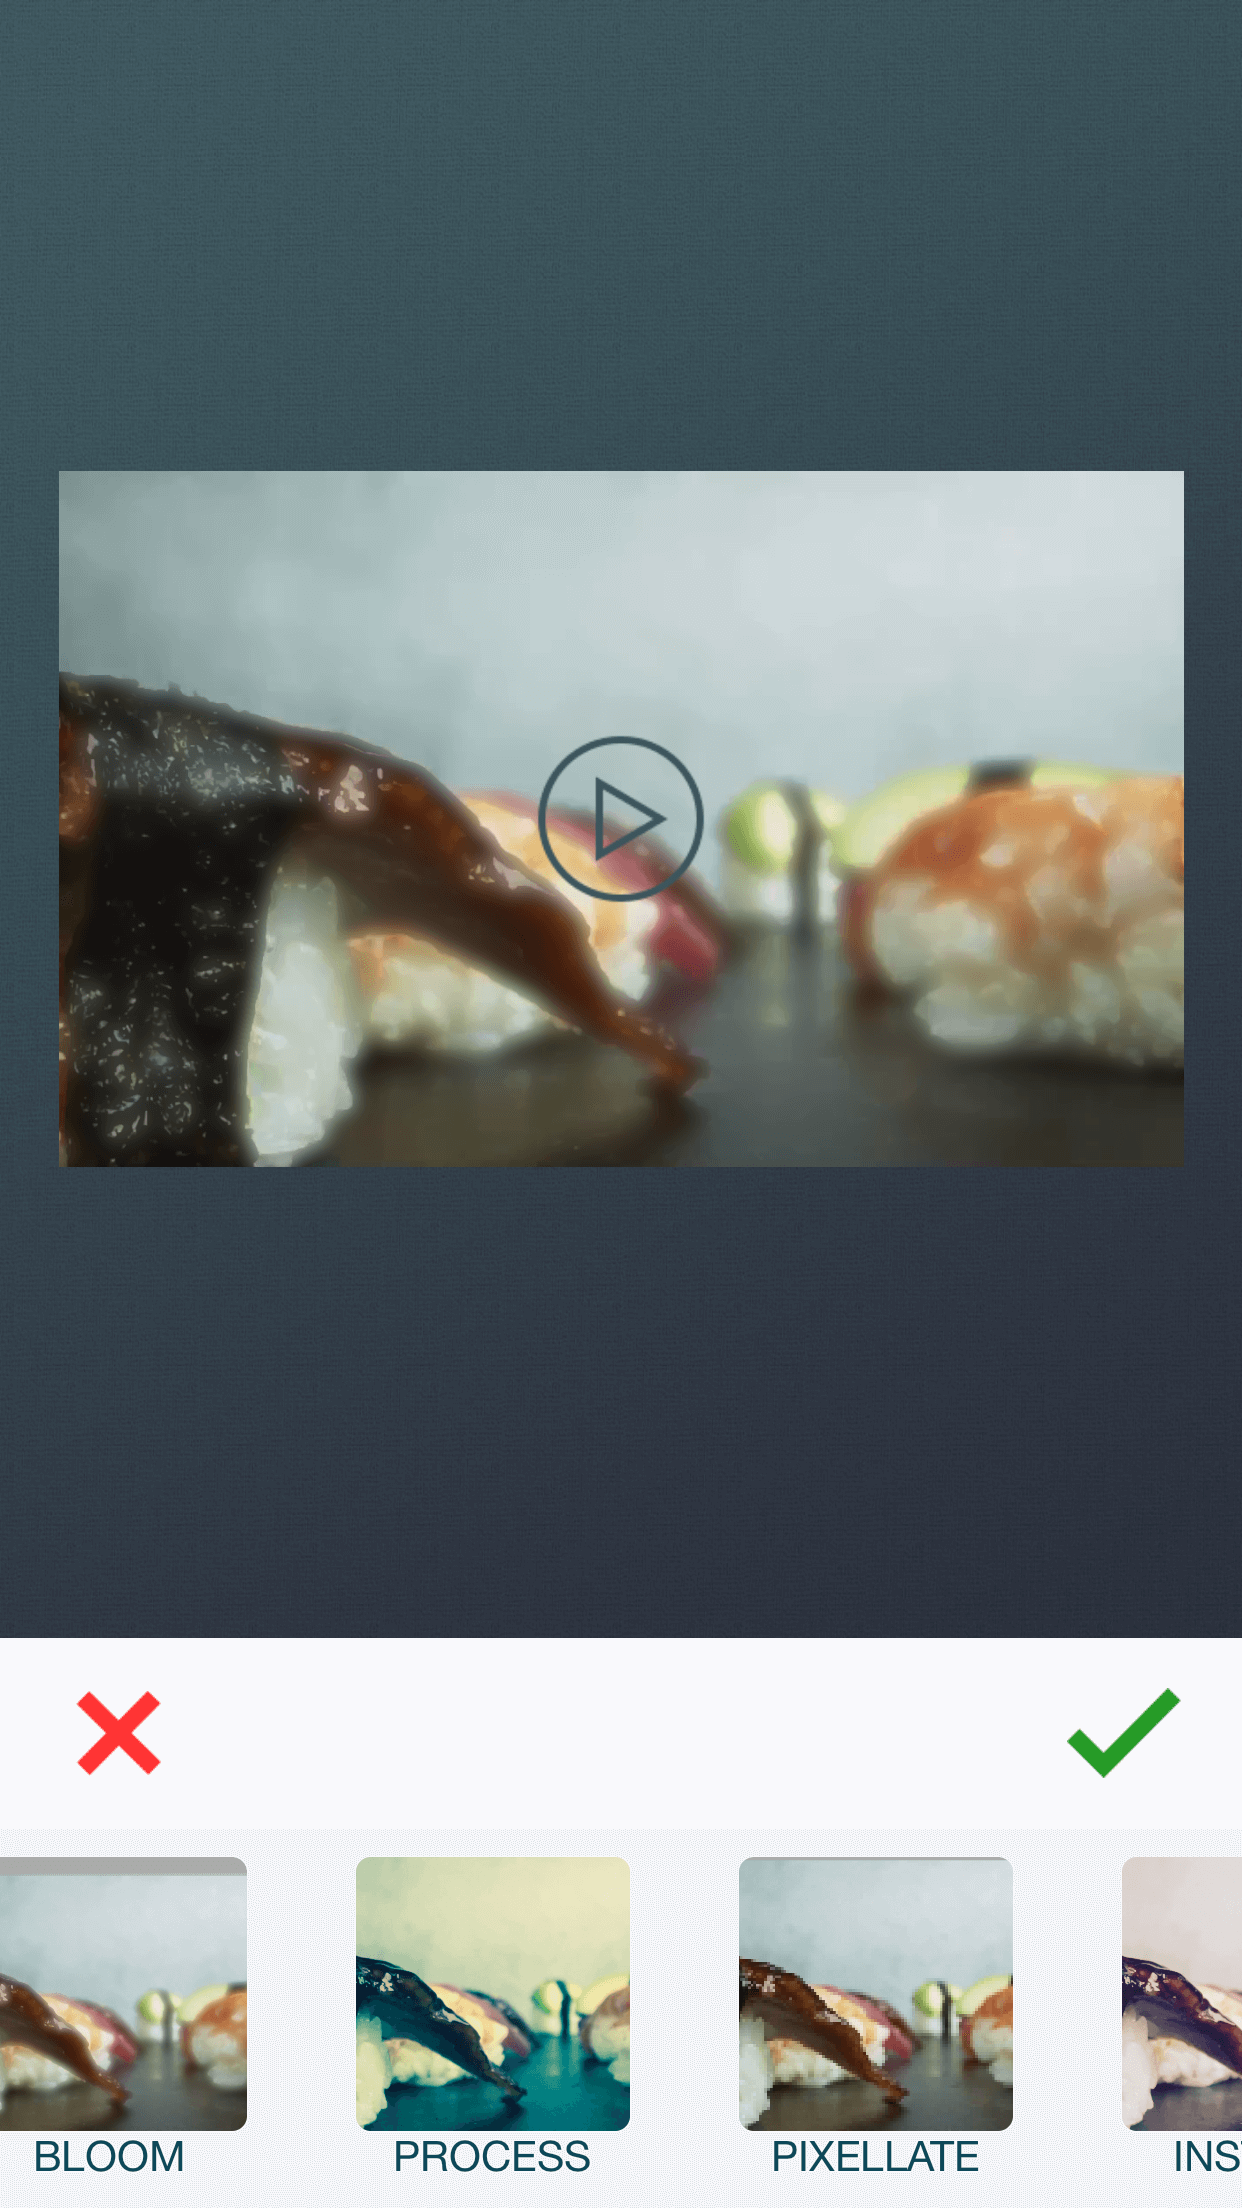 Add filters to videos.